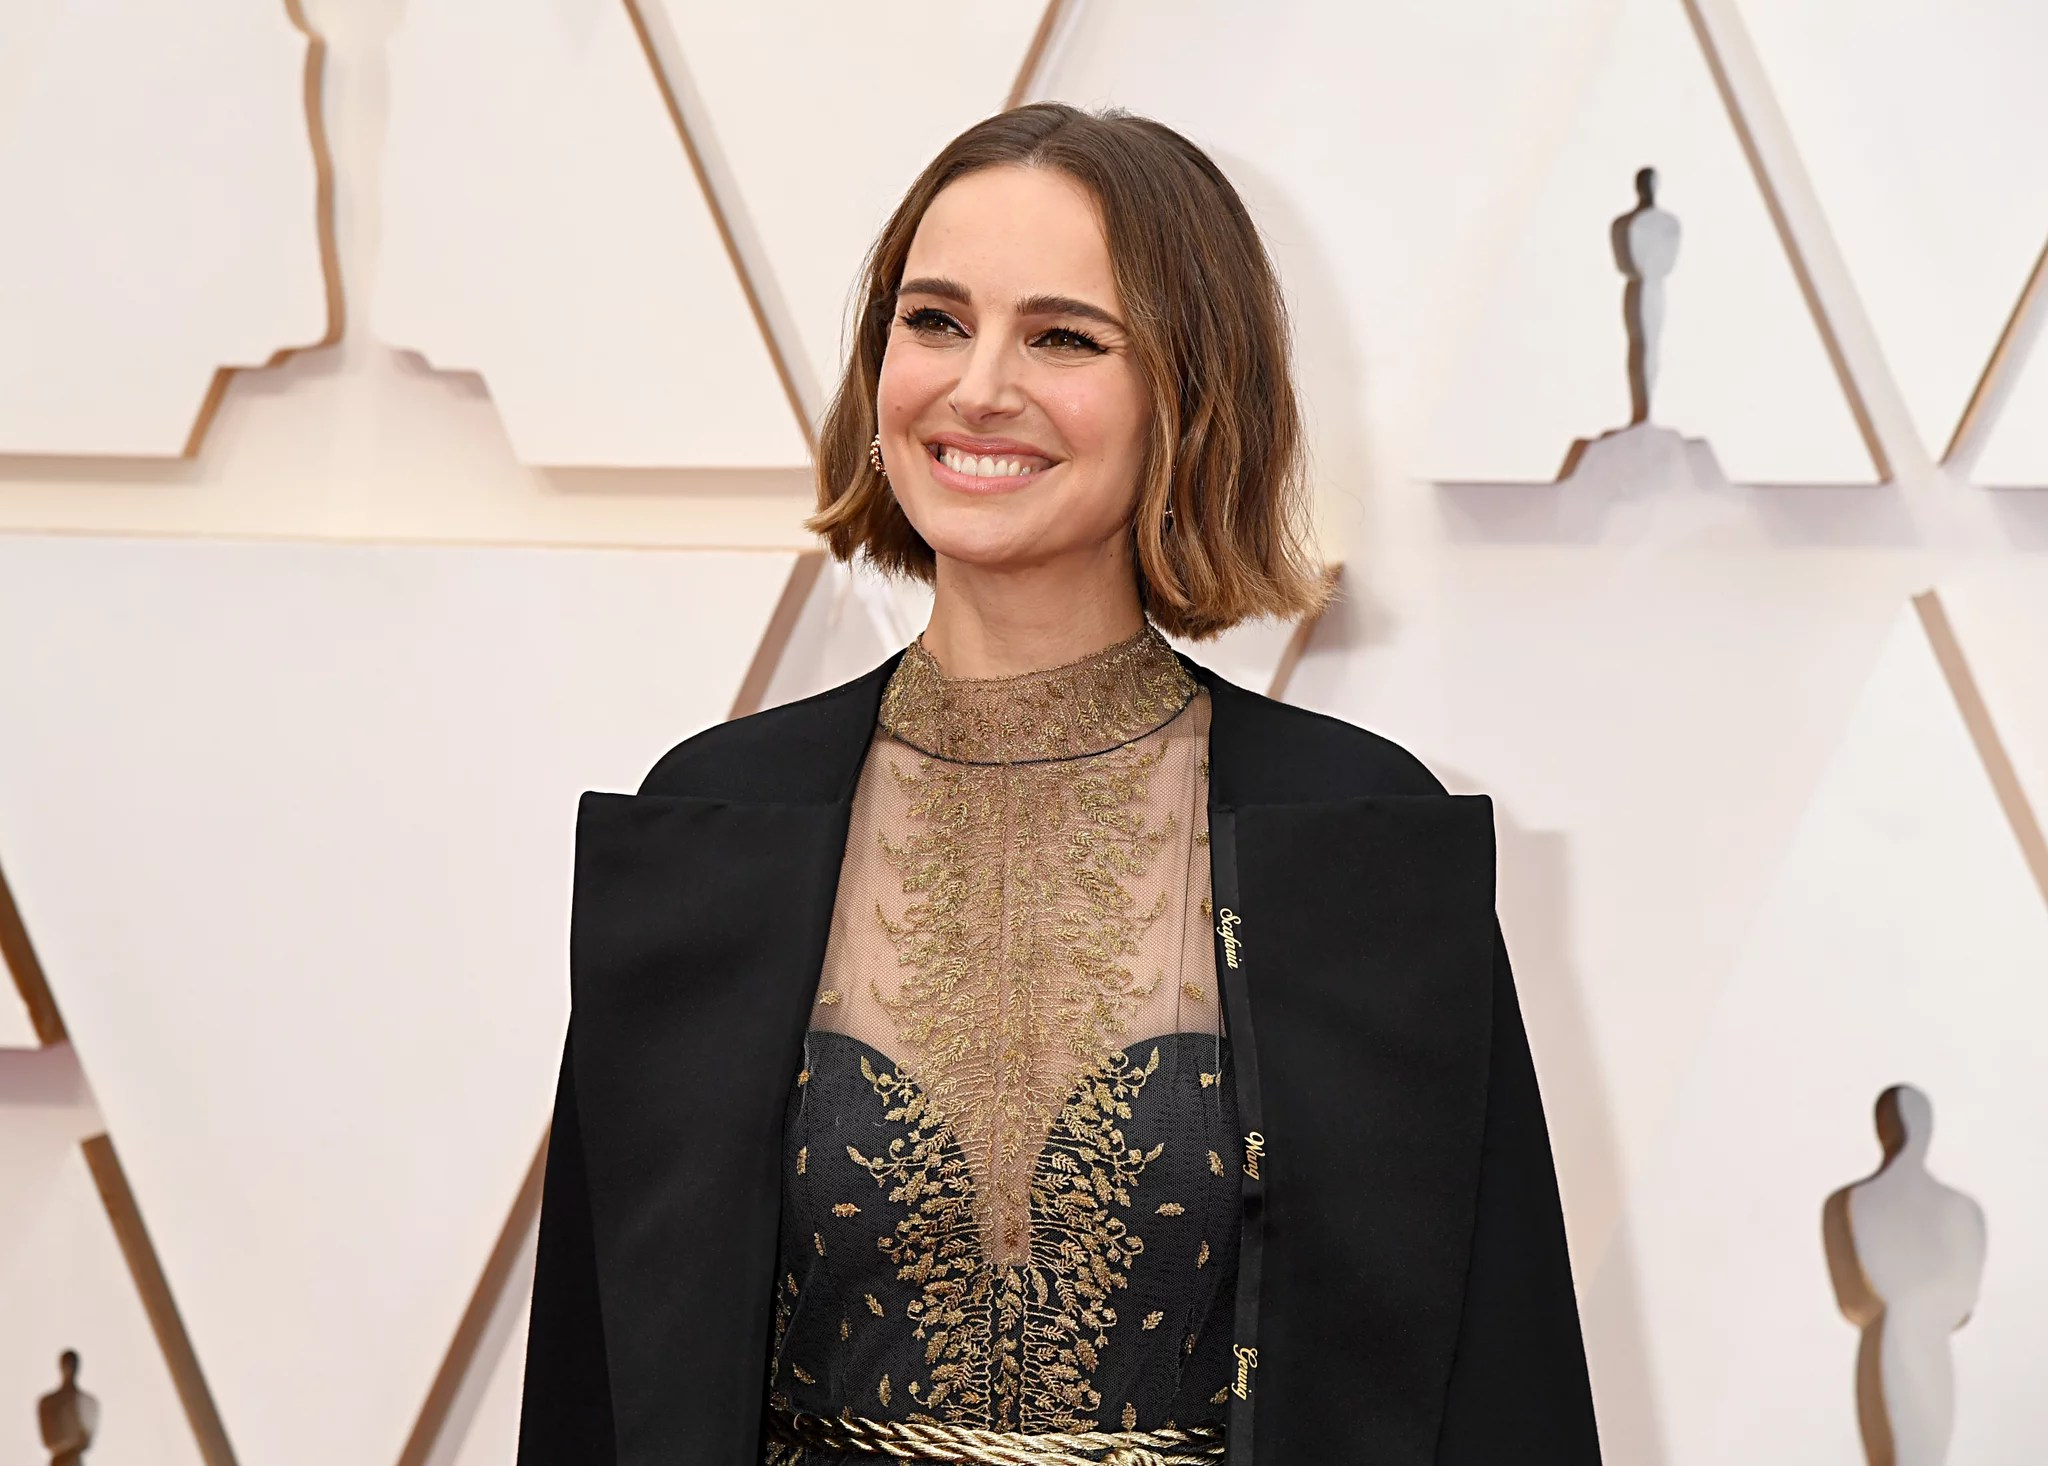 HOLLYWOOD, CALIFORNIA - FEBRUARY 09: Natalie Portman attends the 92nd Annual Academy Awards at Hollywood and Highland on February 09, 2020 in Hollywood, California. (Photo by Jeff Kravitz/FilmMagic)